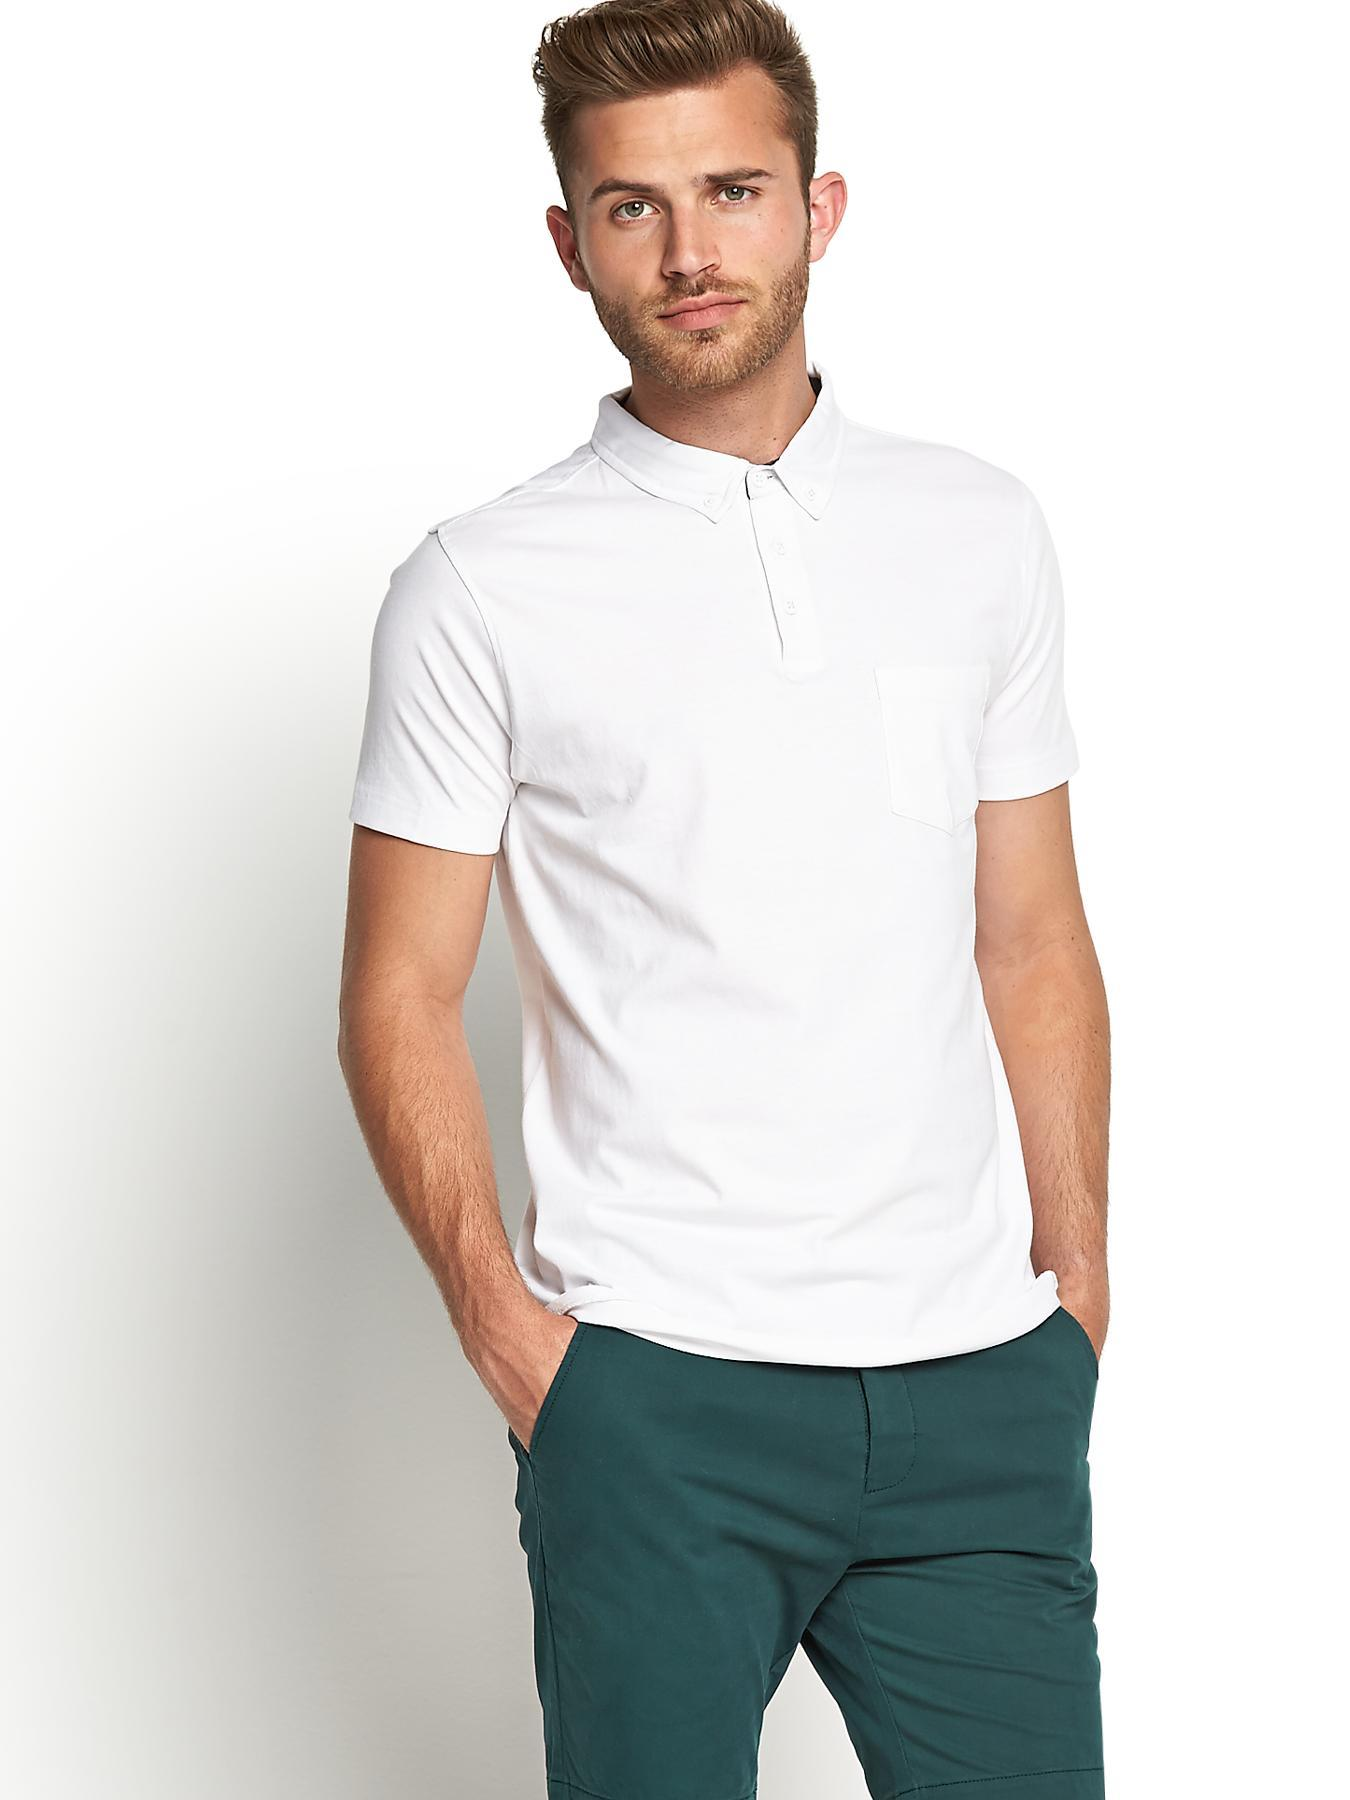 Short Sleeve Slim Fit Mens Jersey Polo Shirt, White at Littlewoods